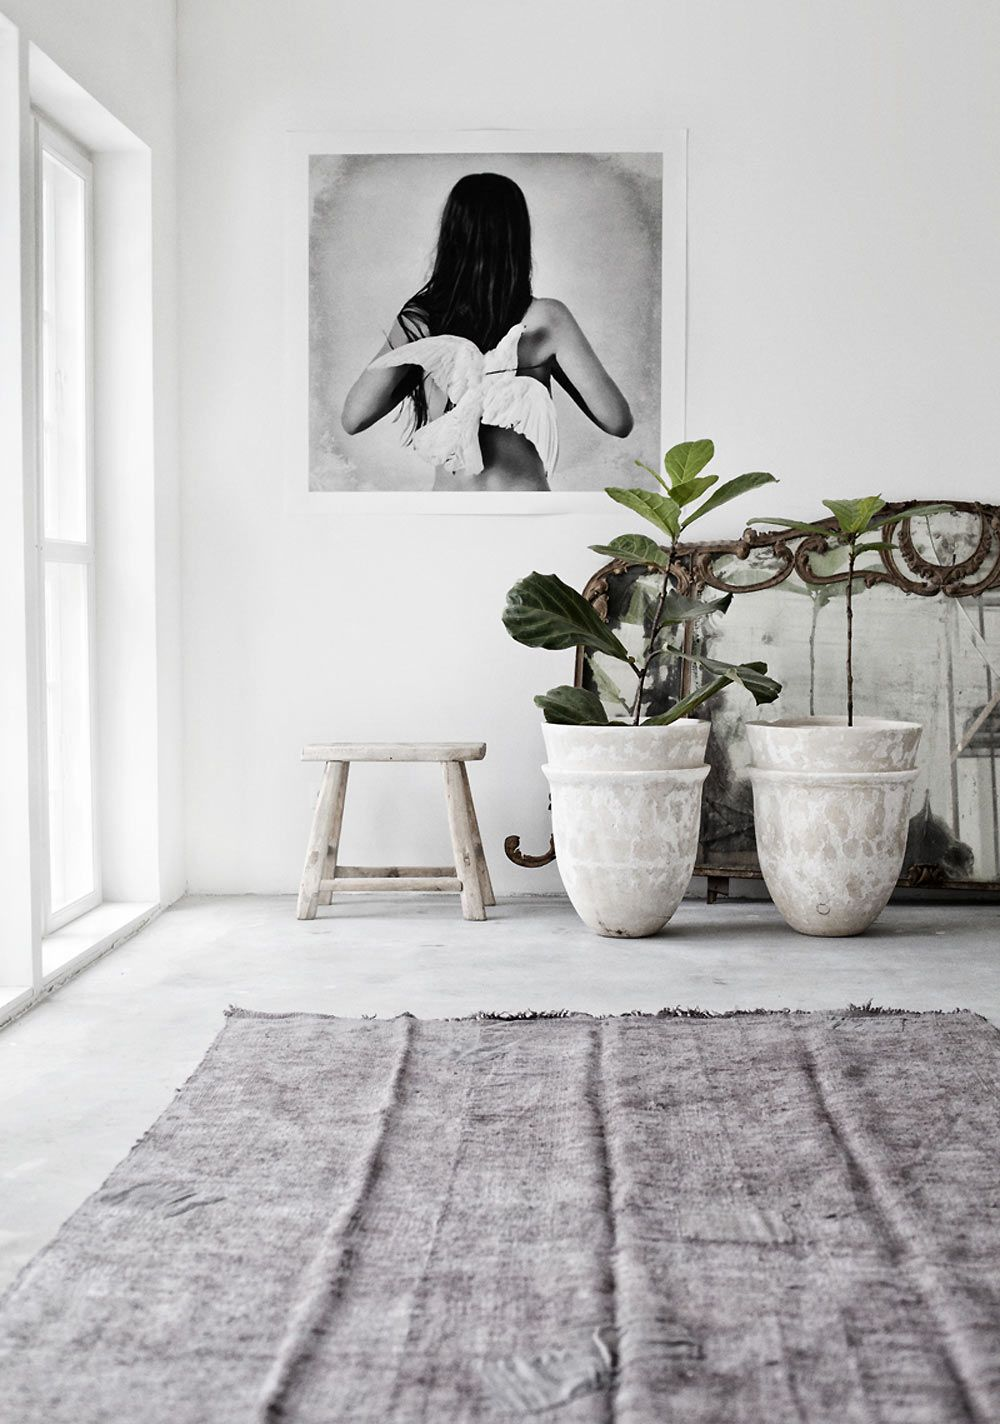 Marie olsson nylander home house inspiration white interior bedroom bathroom dining room natural white timber concrete light outdoor grey carpet plants